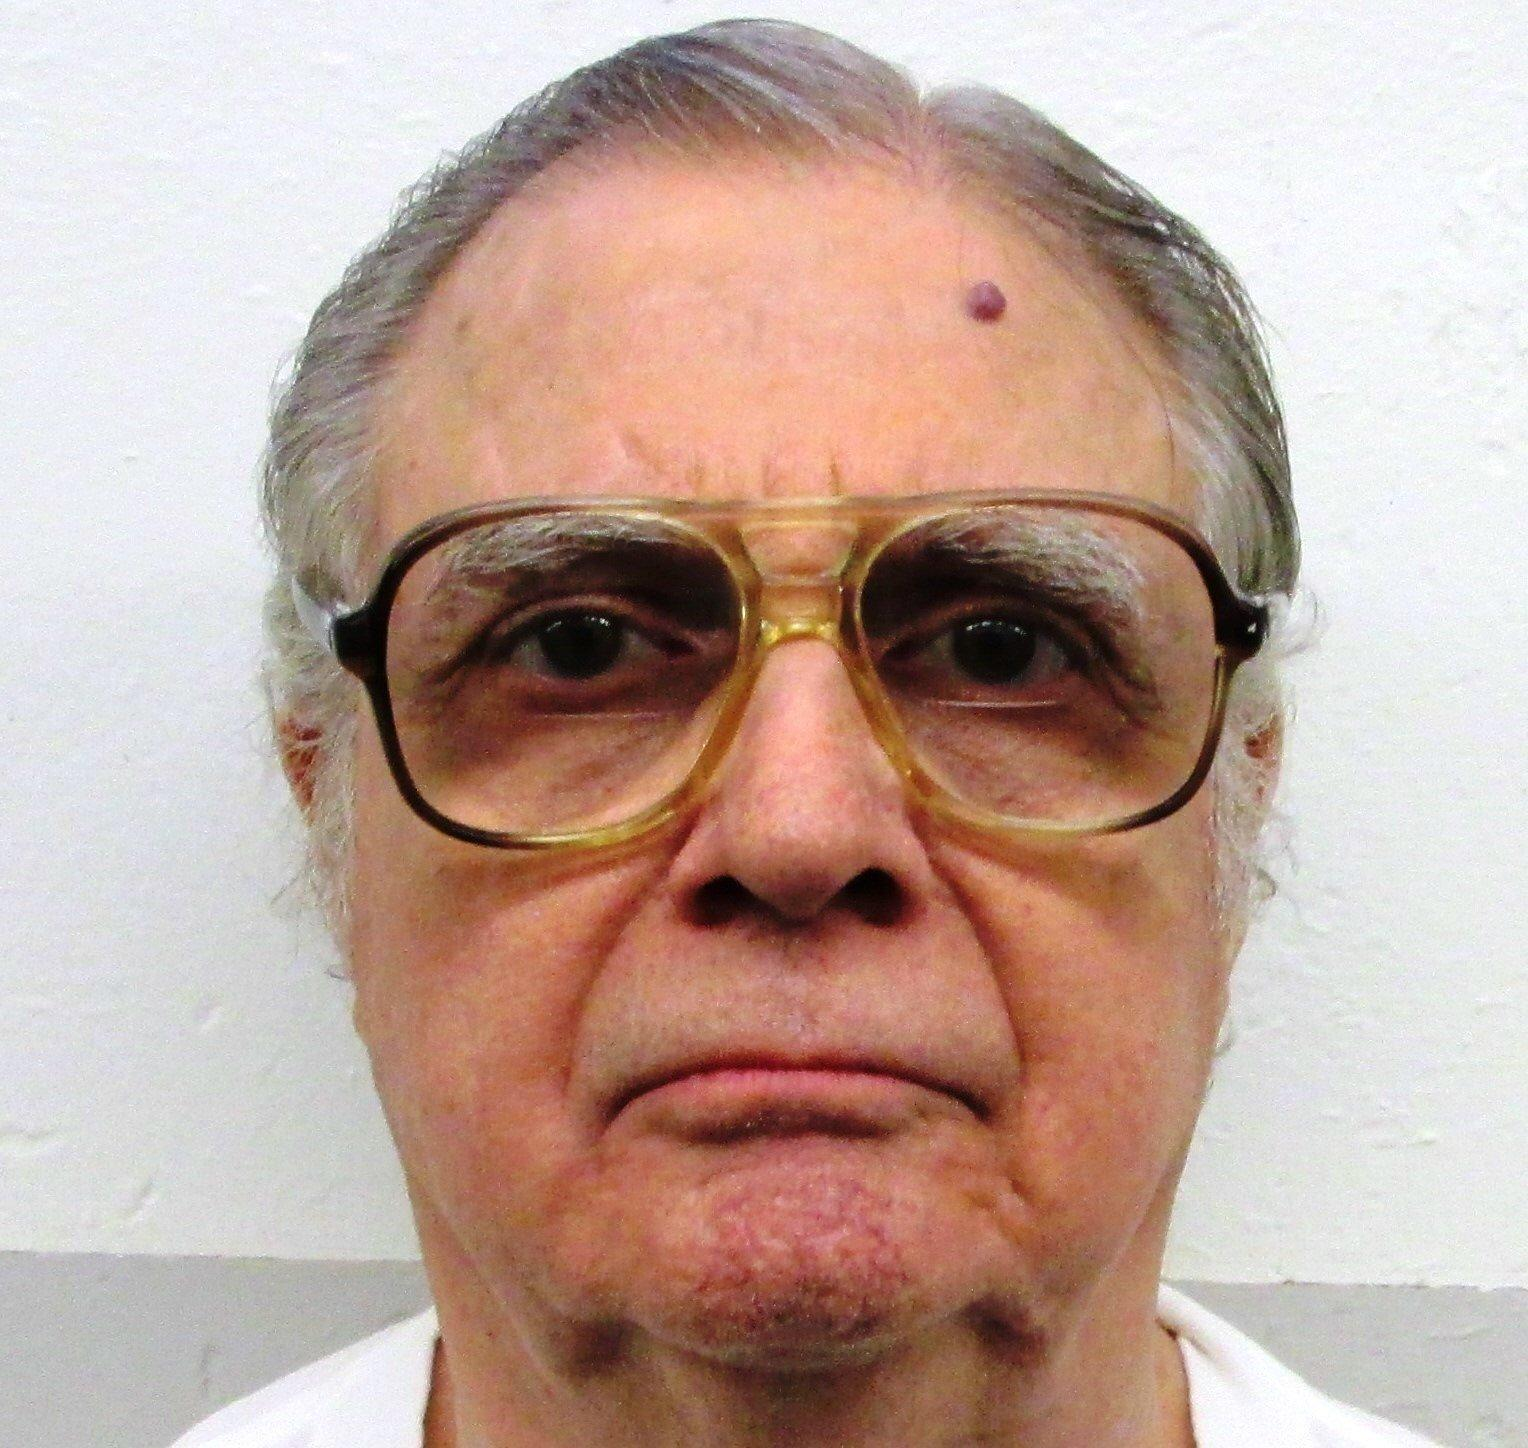 Alabama Death Row Inmate Appeals to the US Supreme Court